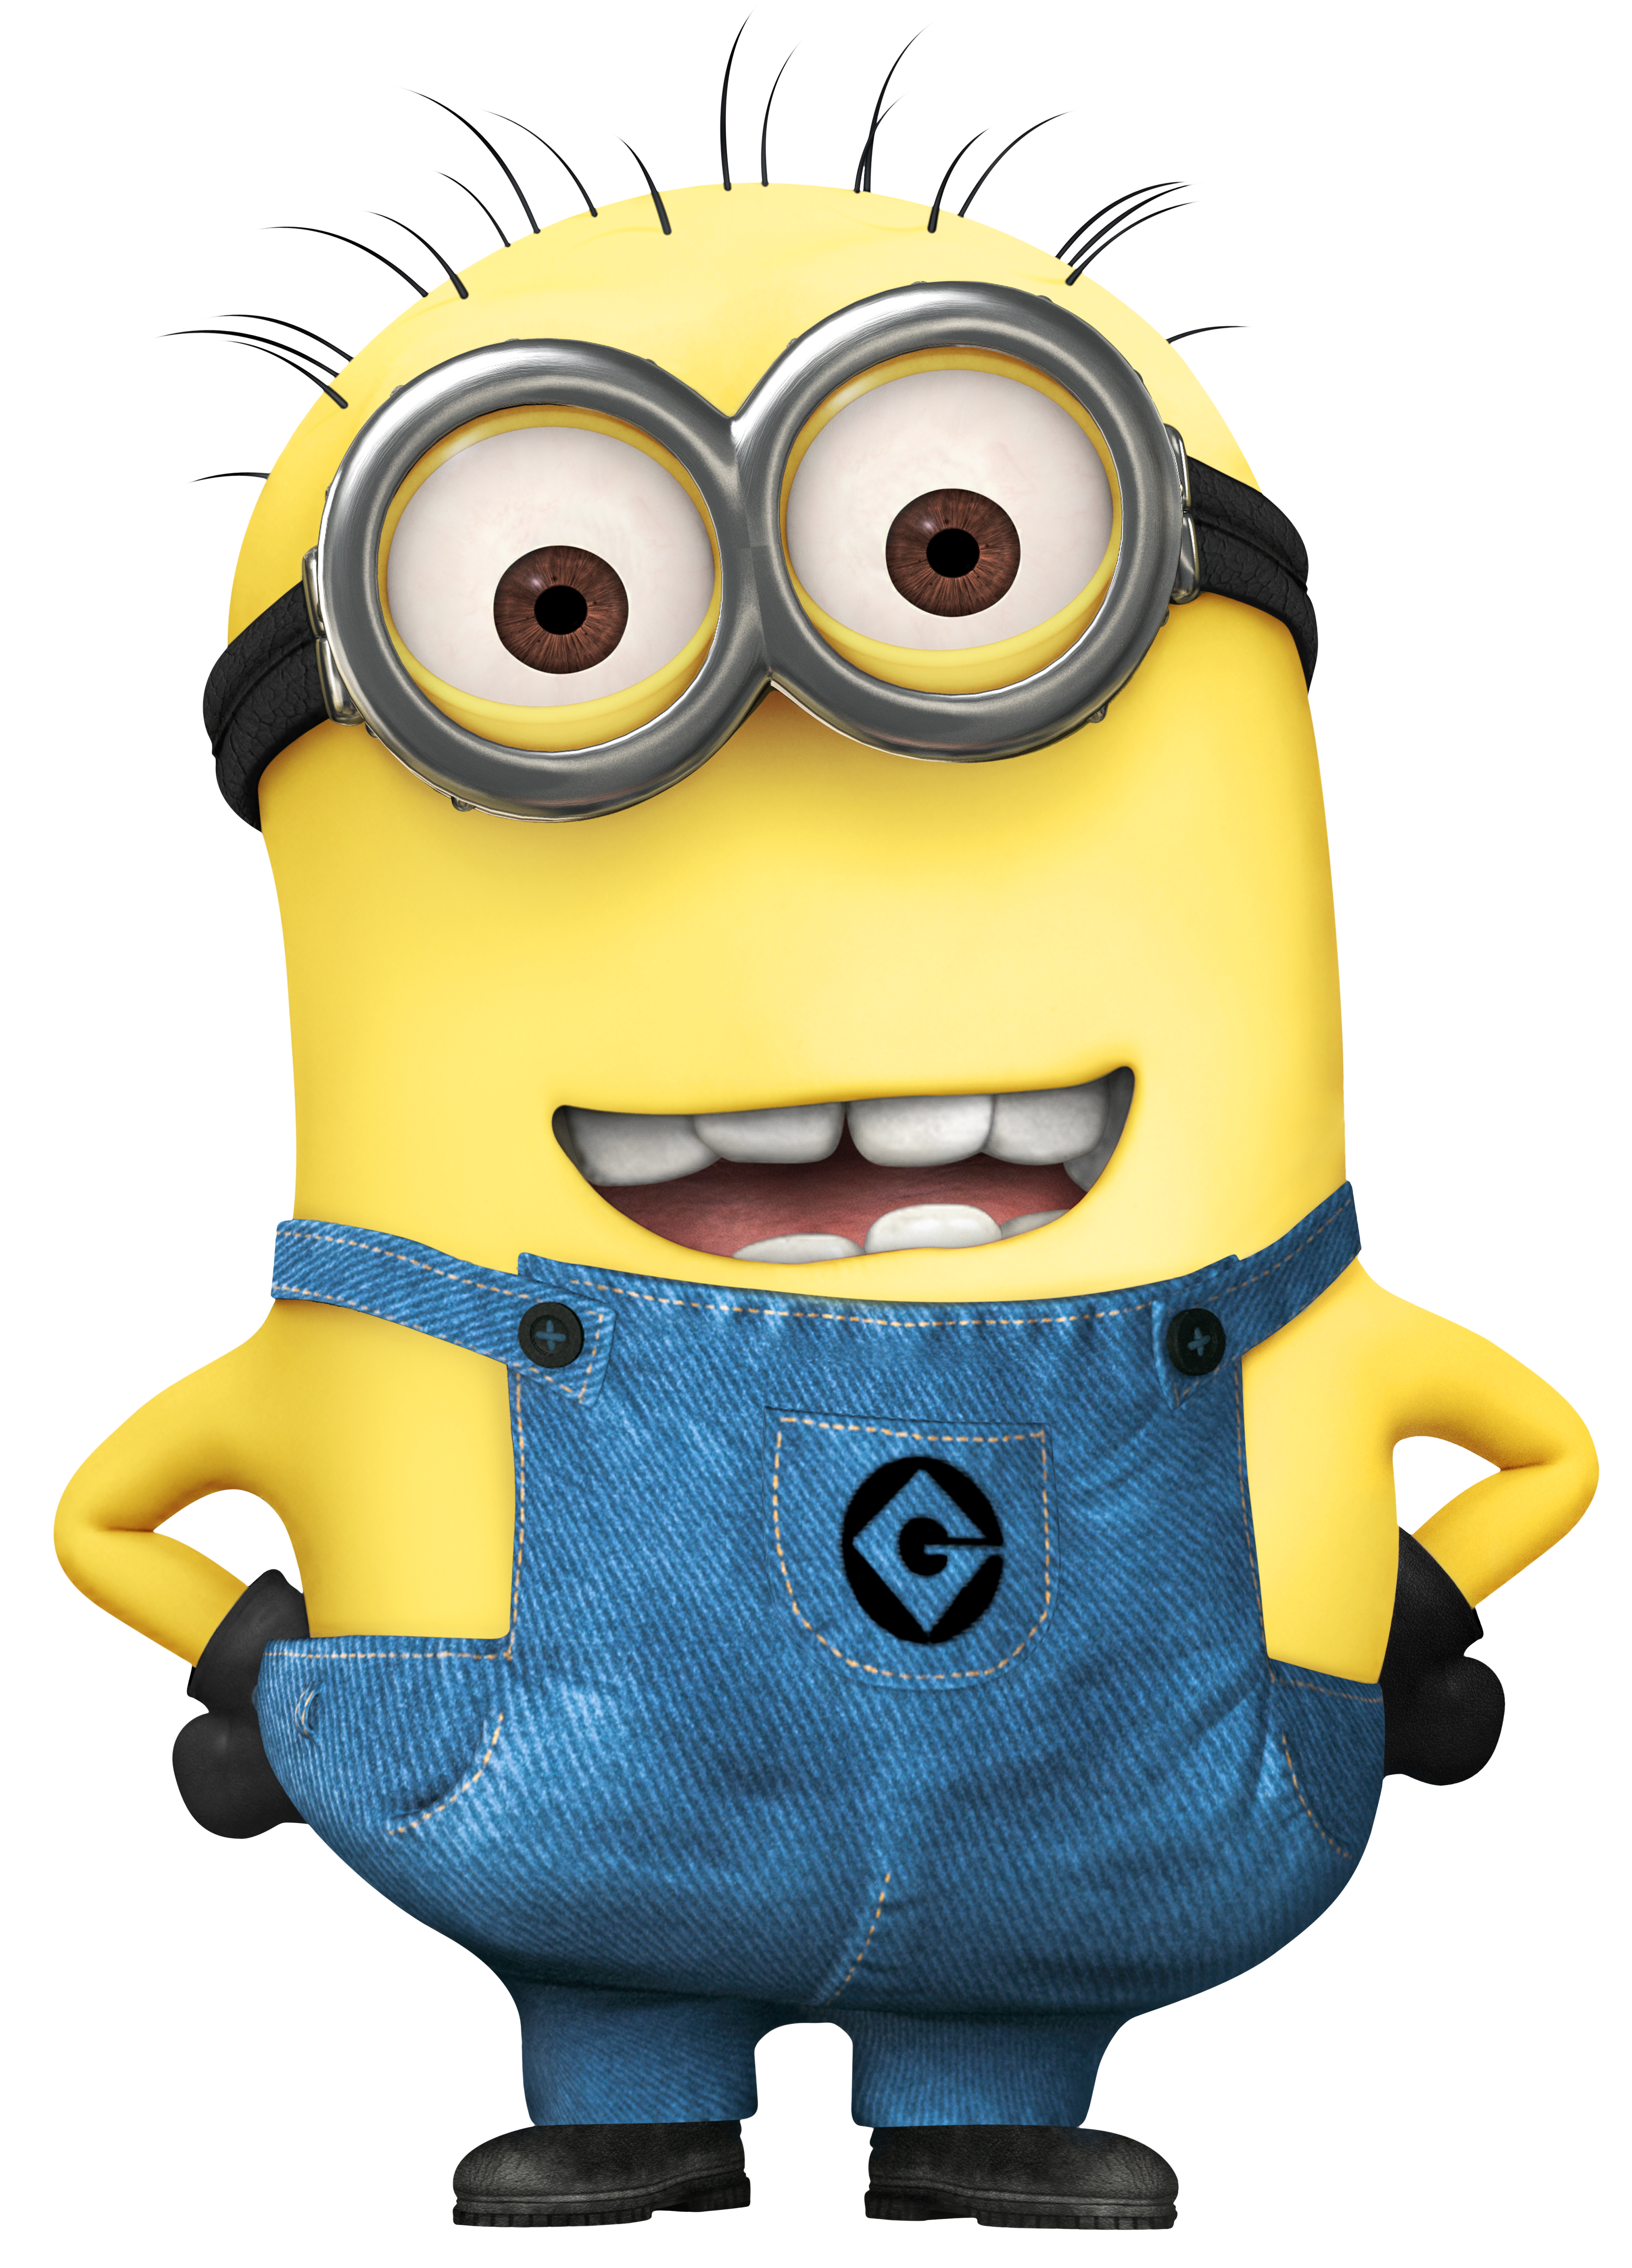 Happy birthday minion png. Extra large transparent image